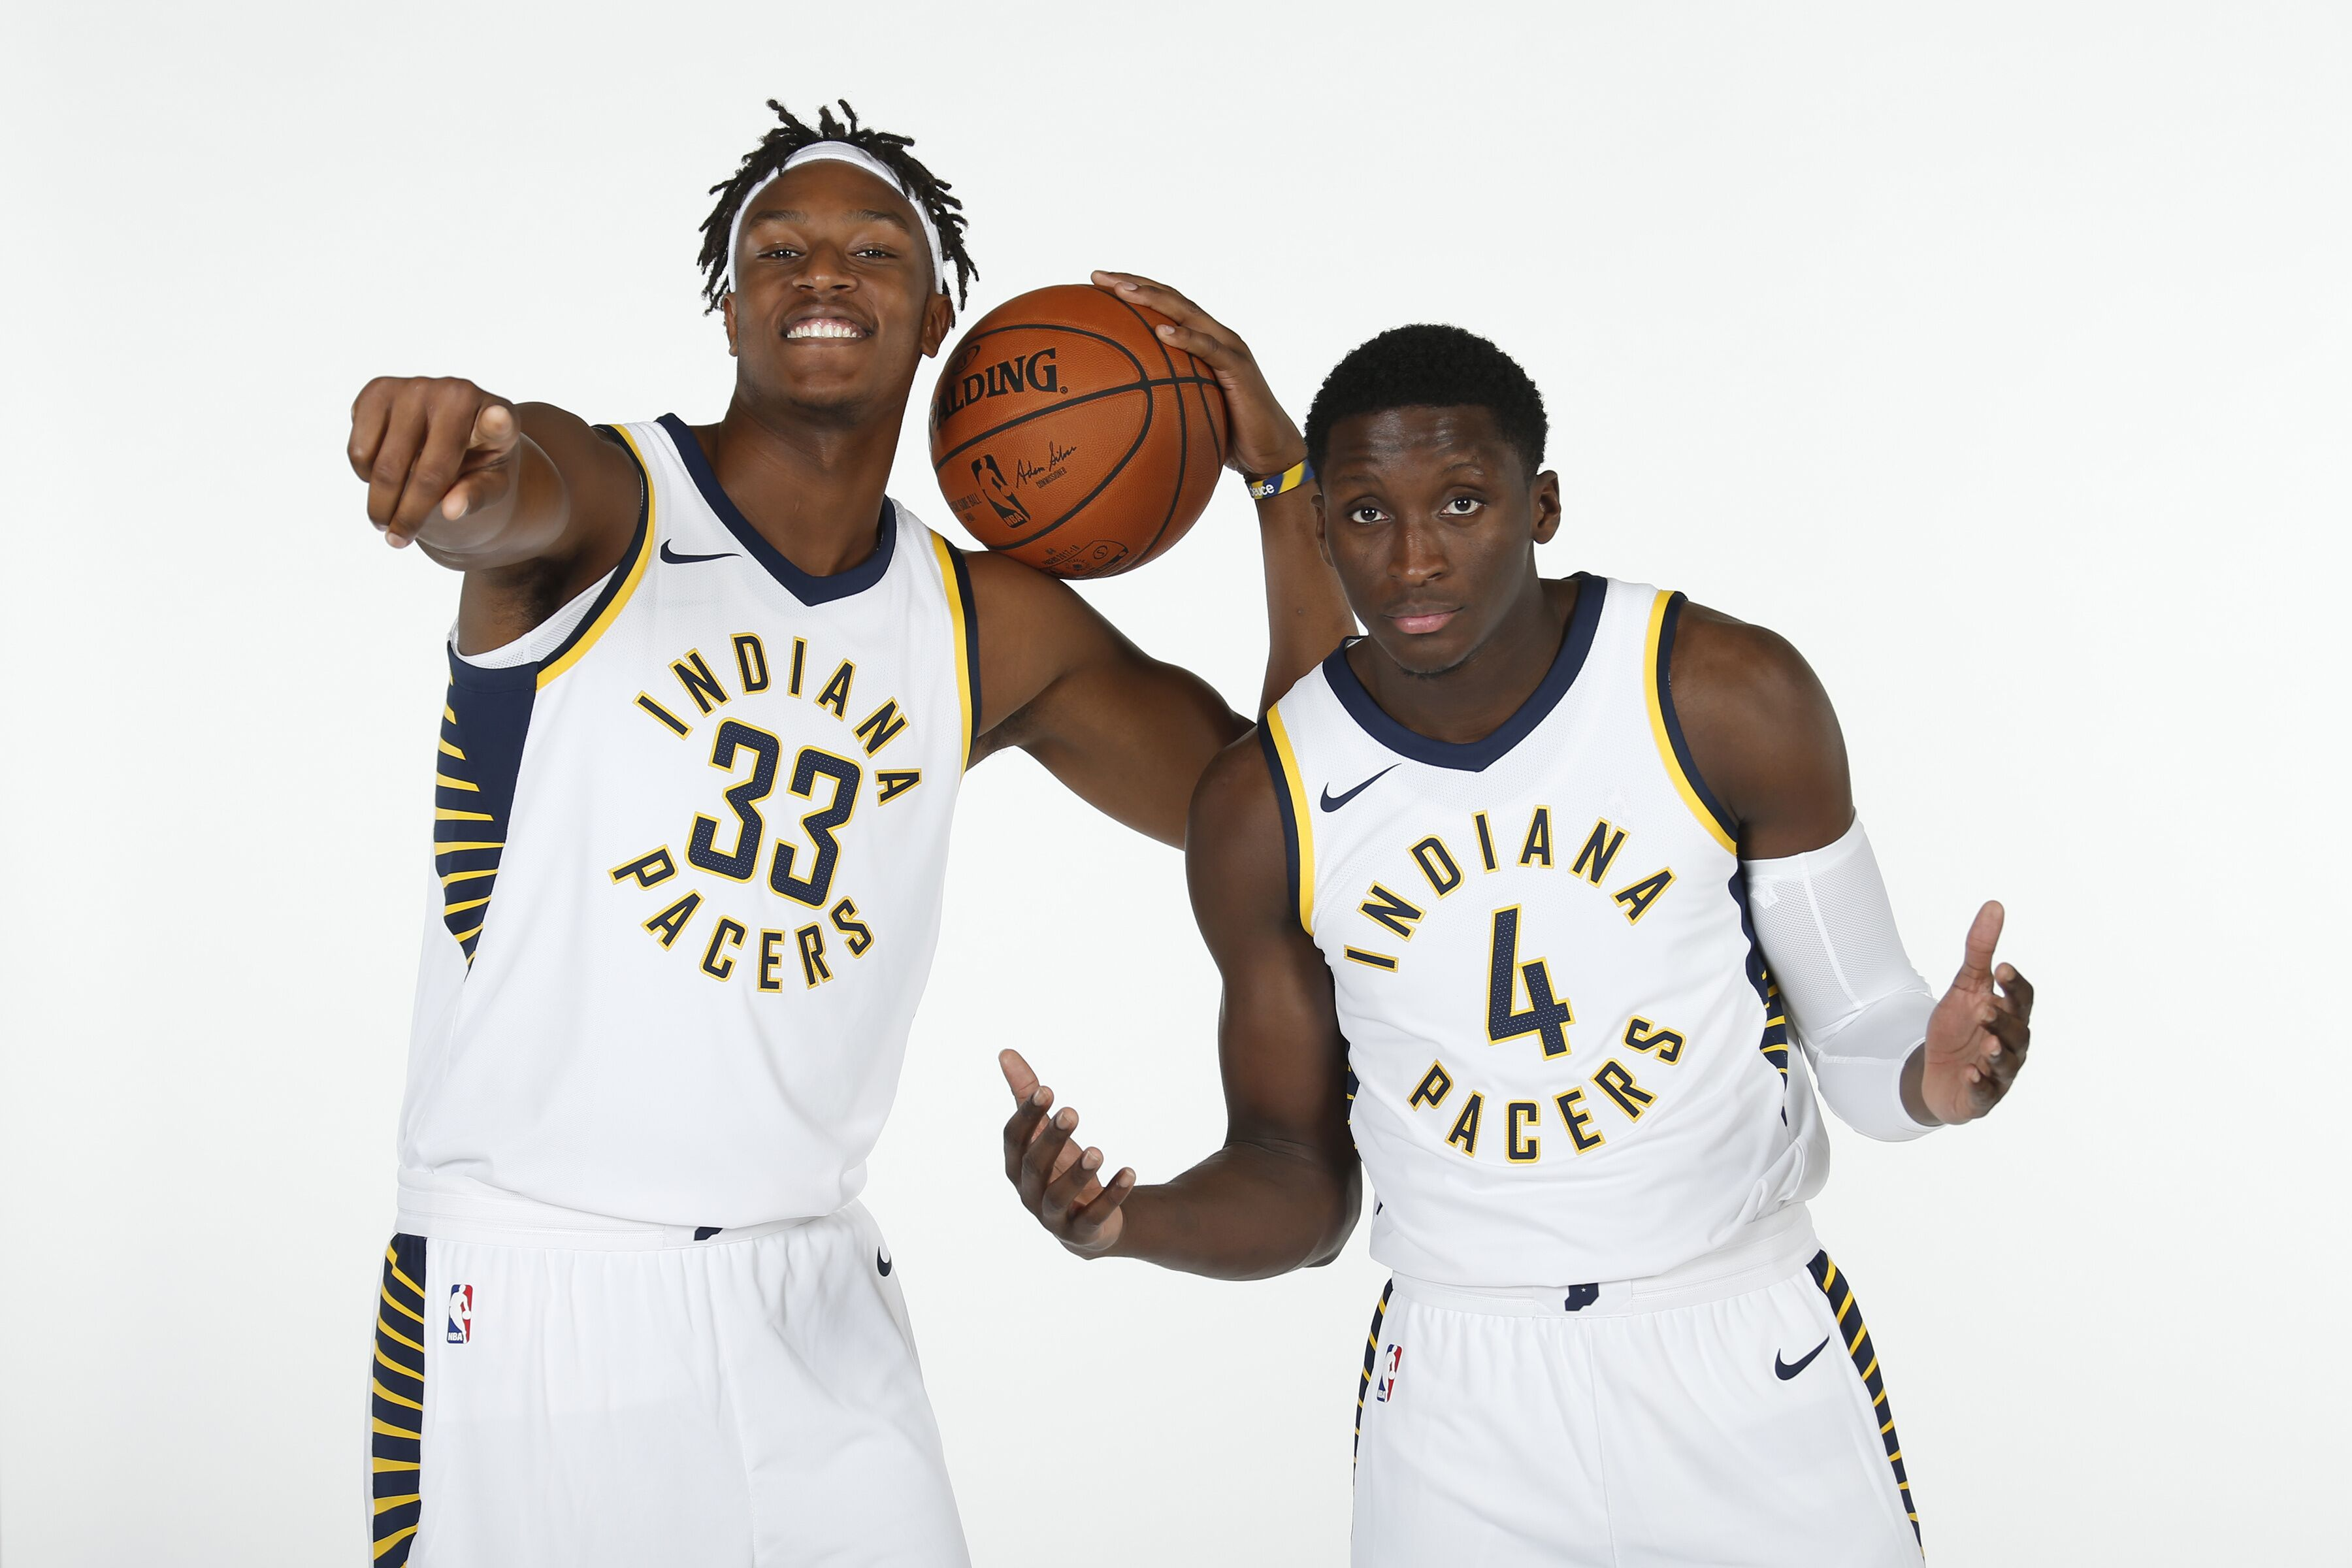 856328520-2017-2018-indiana-pacers-media-day.jpg